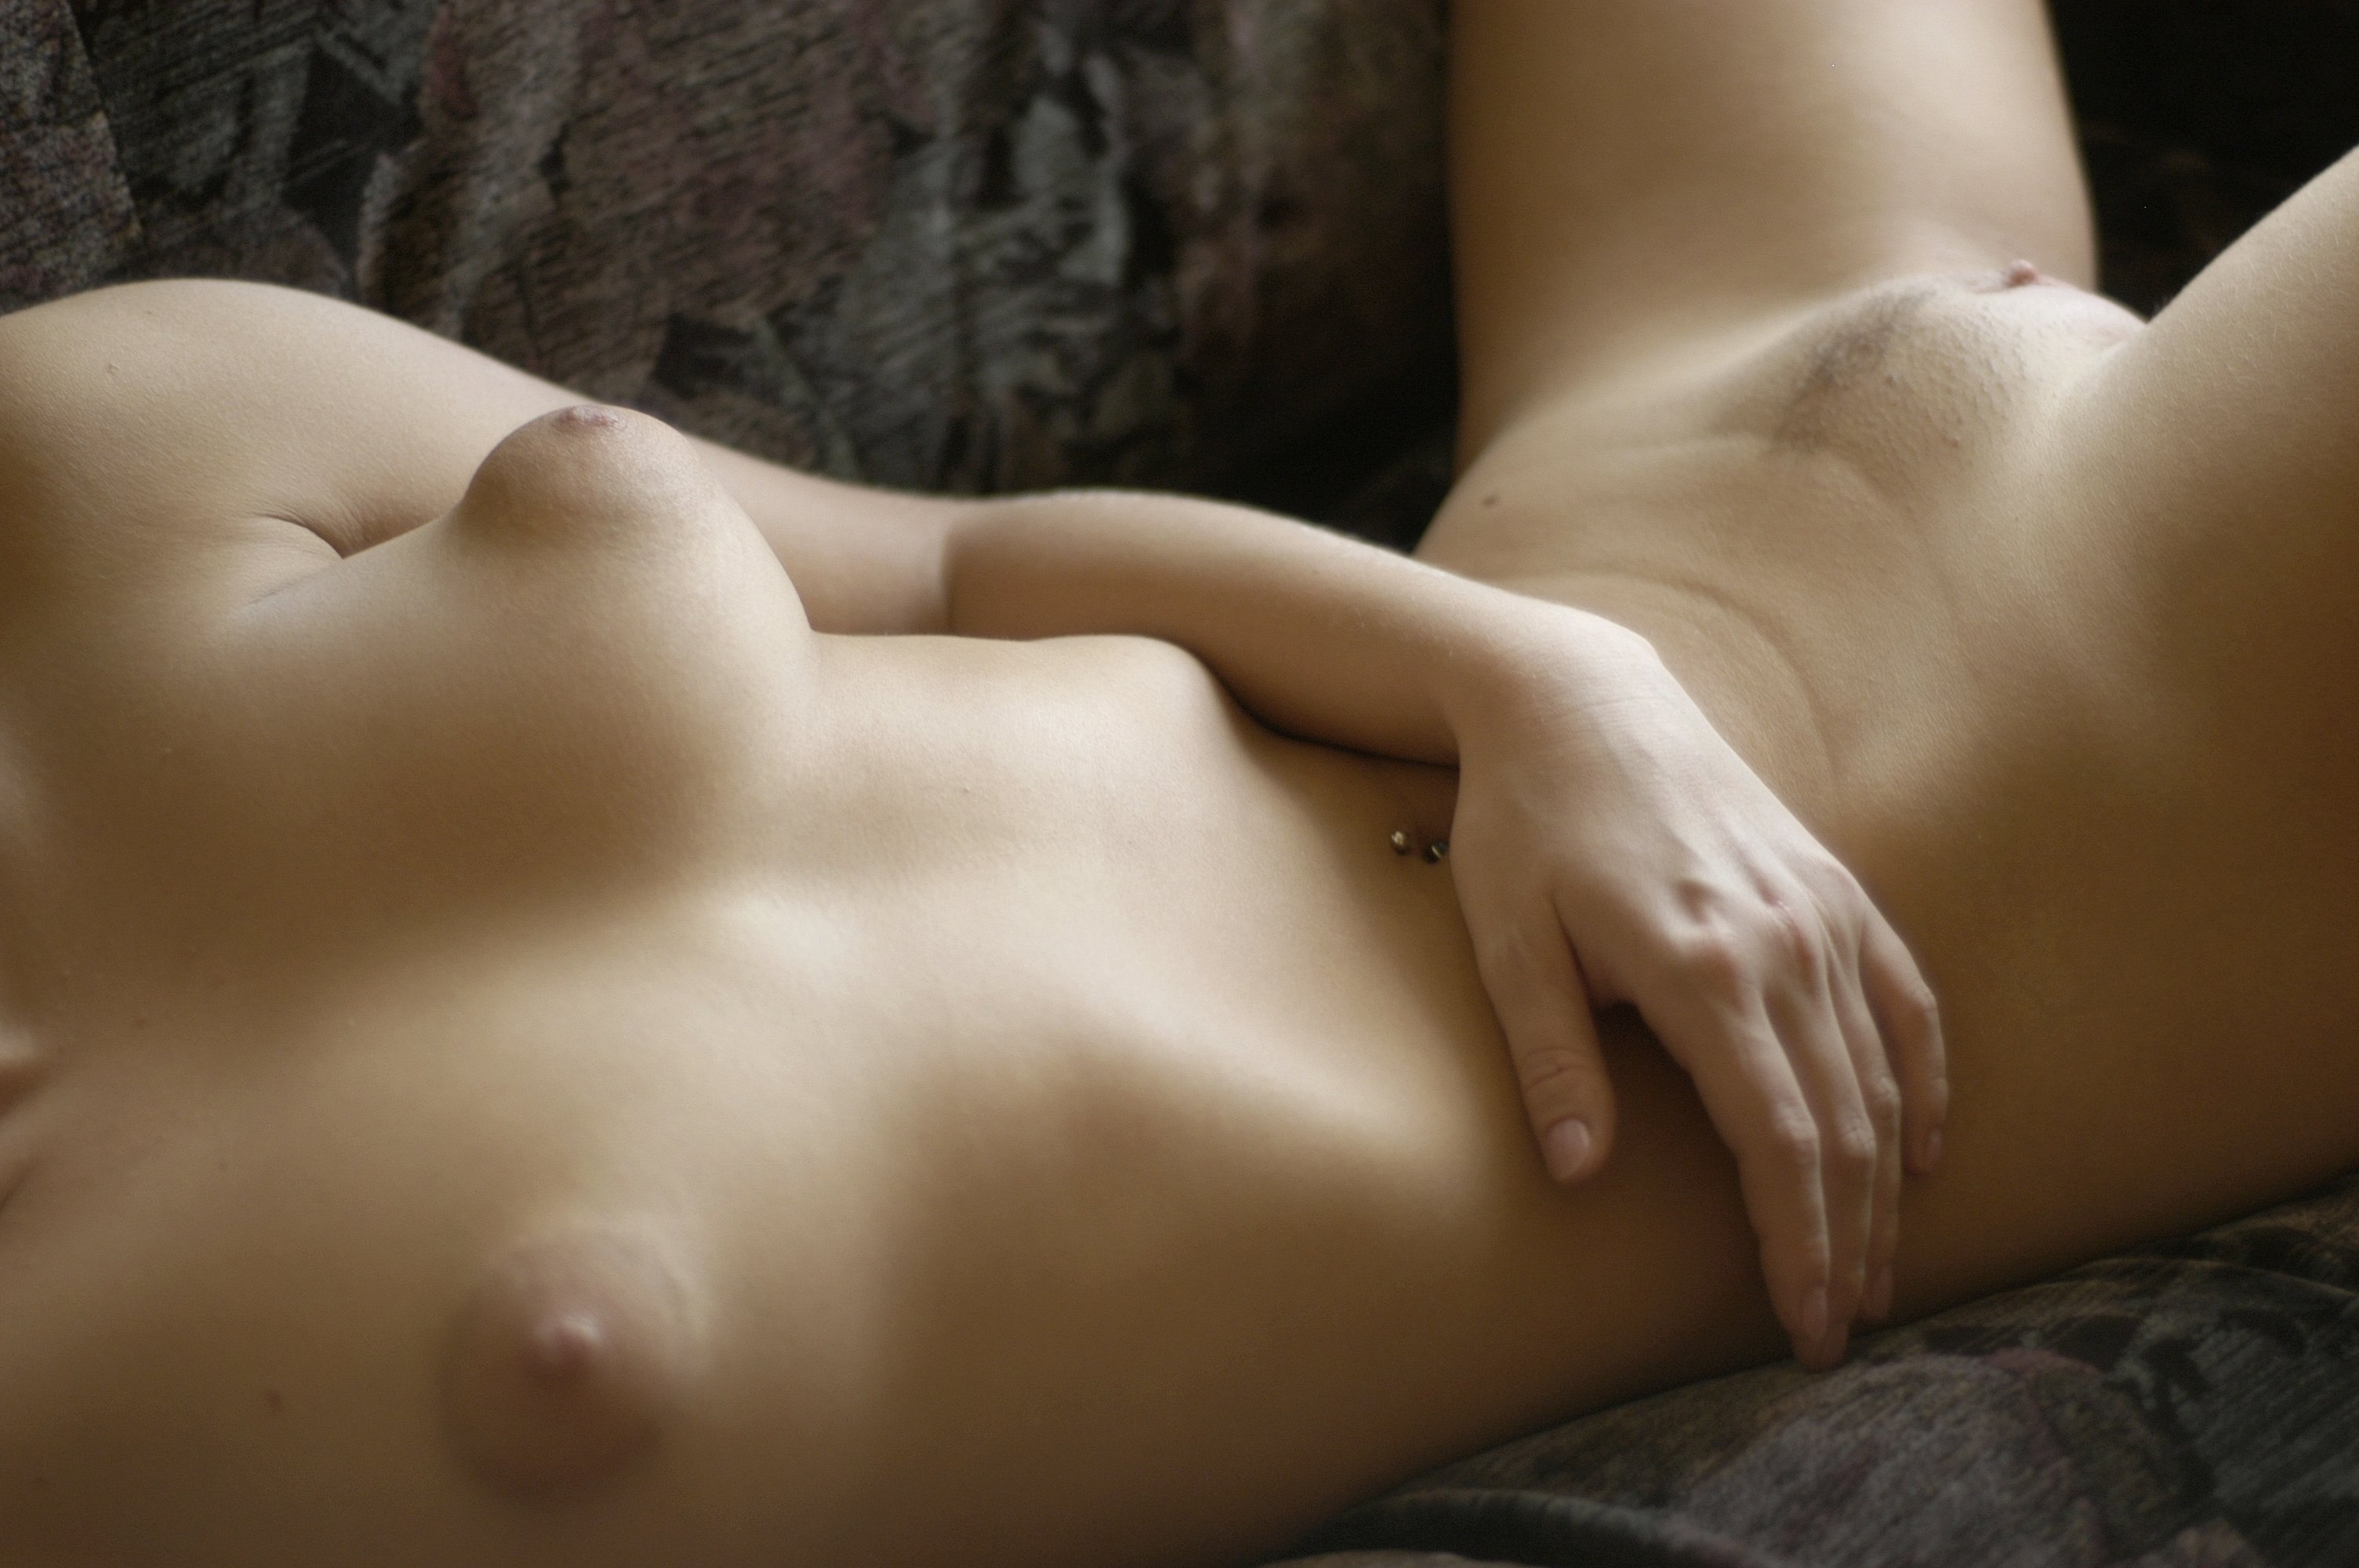 Abs Nude Pics